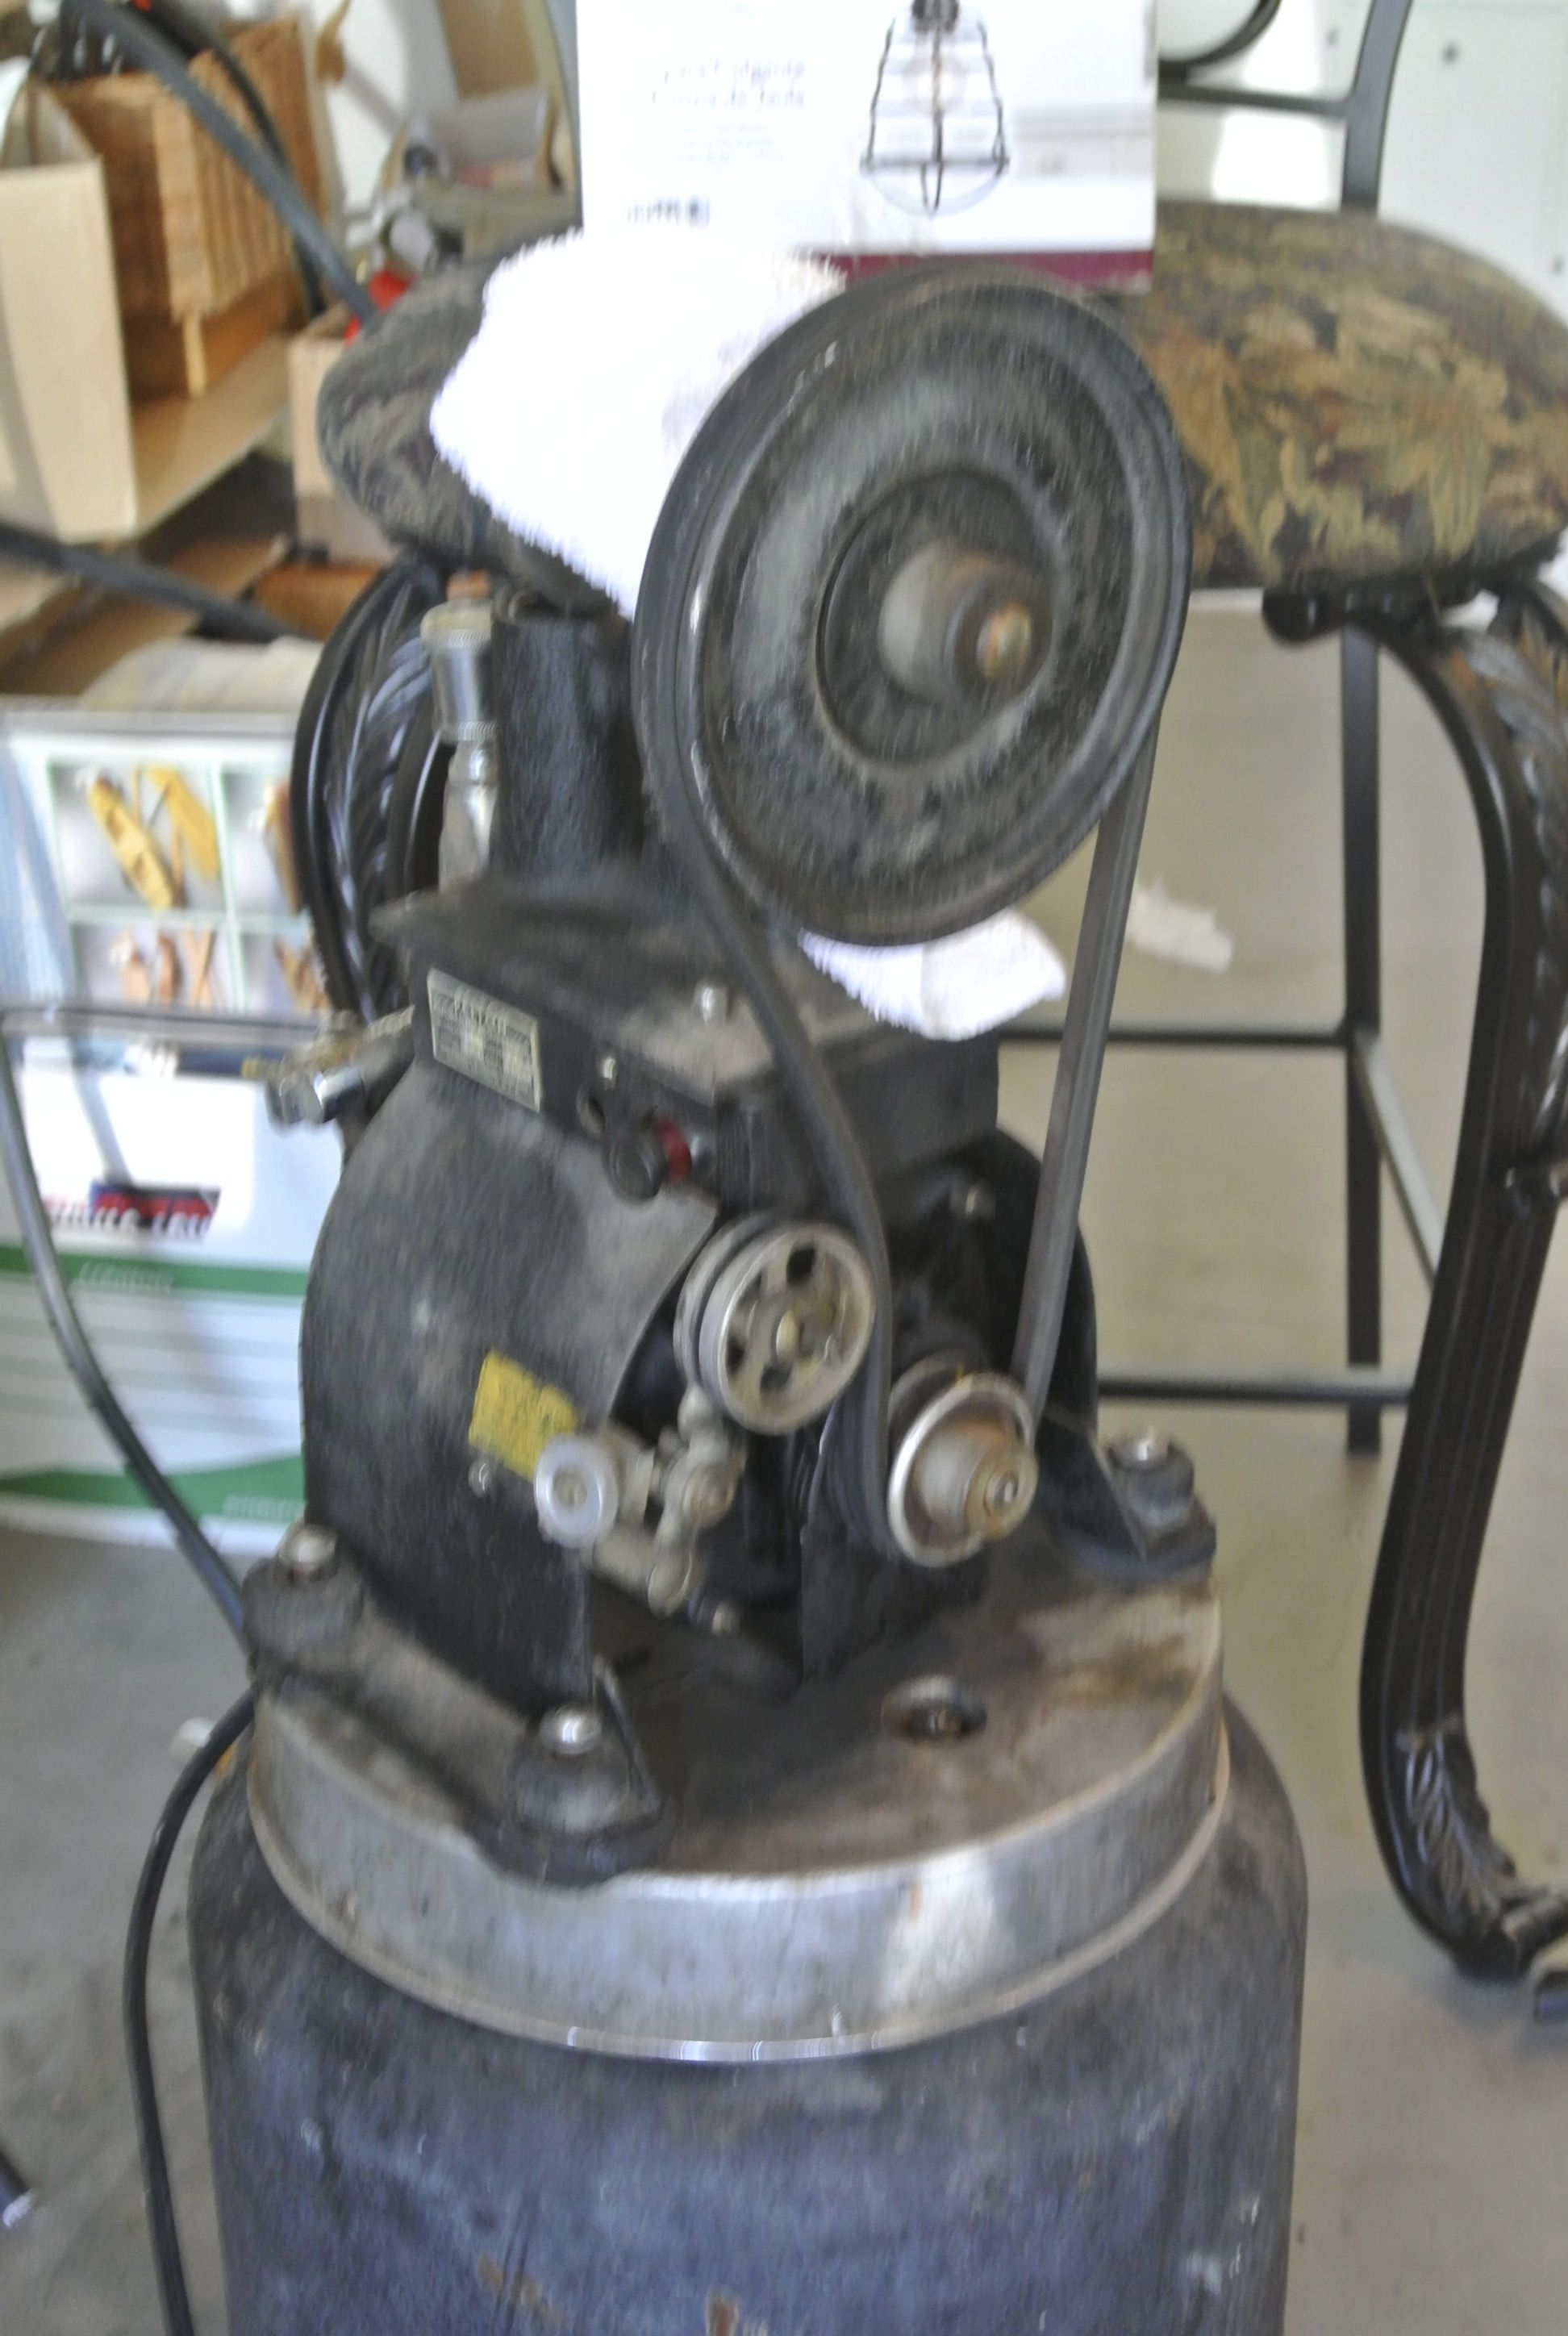 Antique Dental air compressor in as found condition